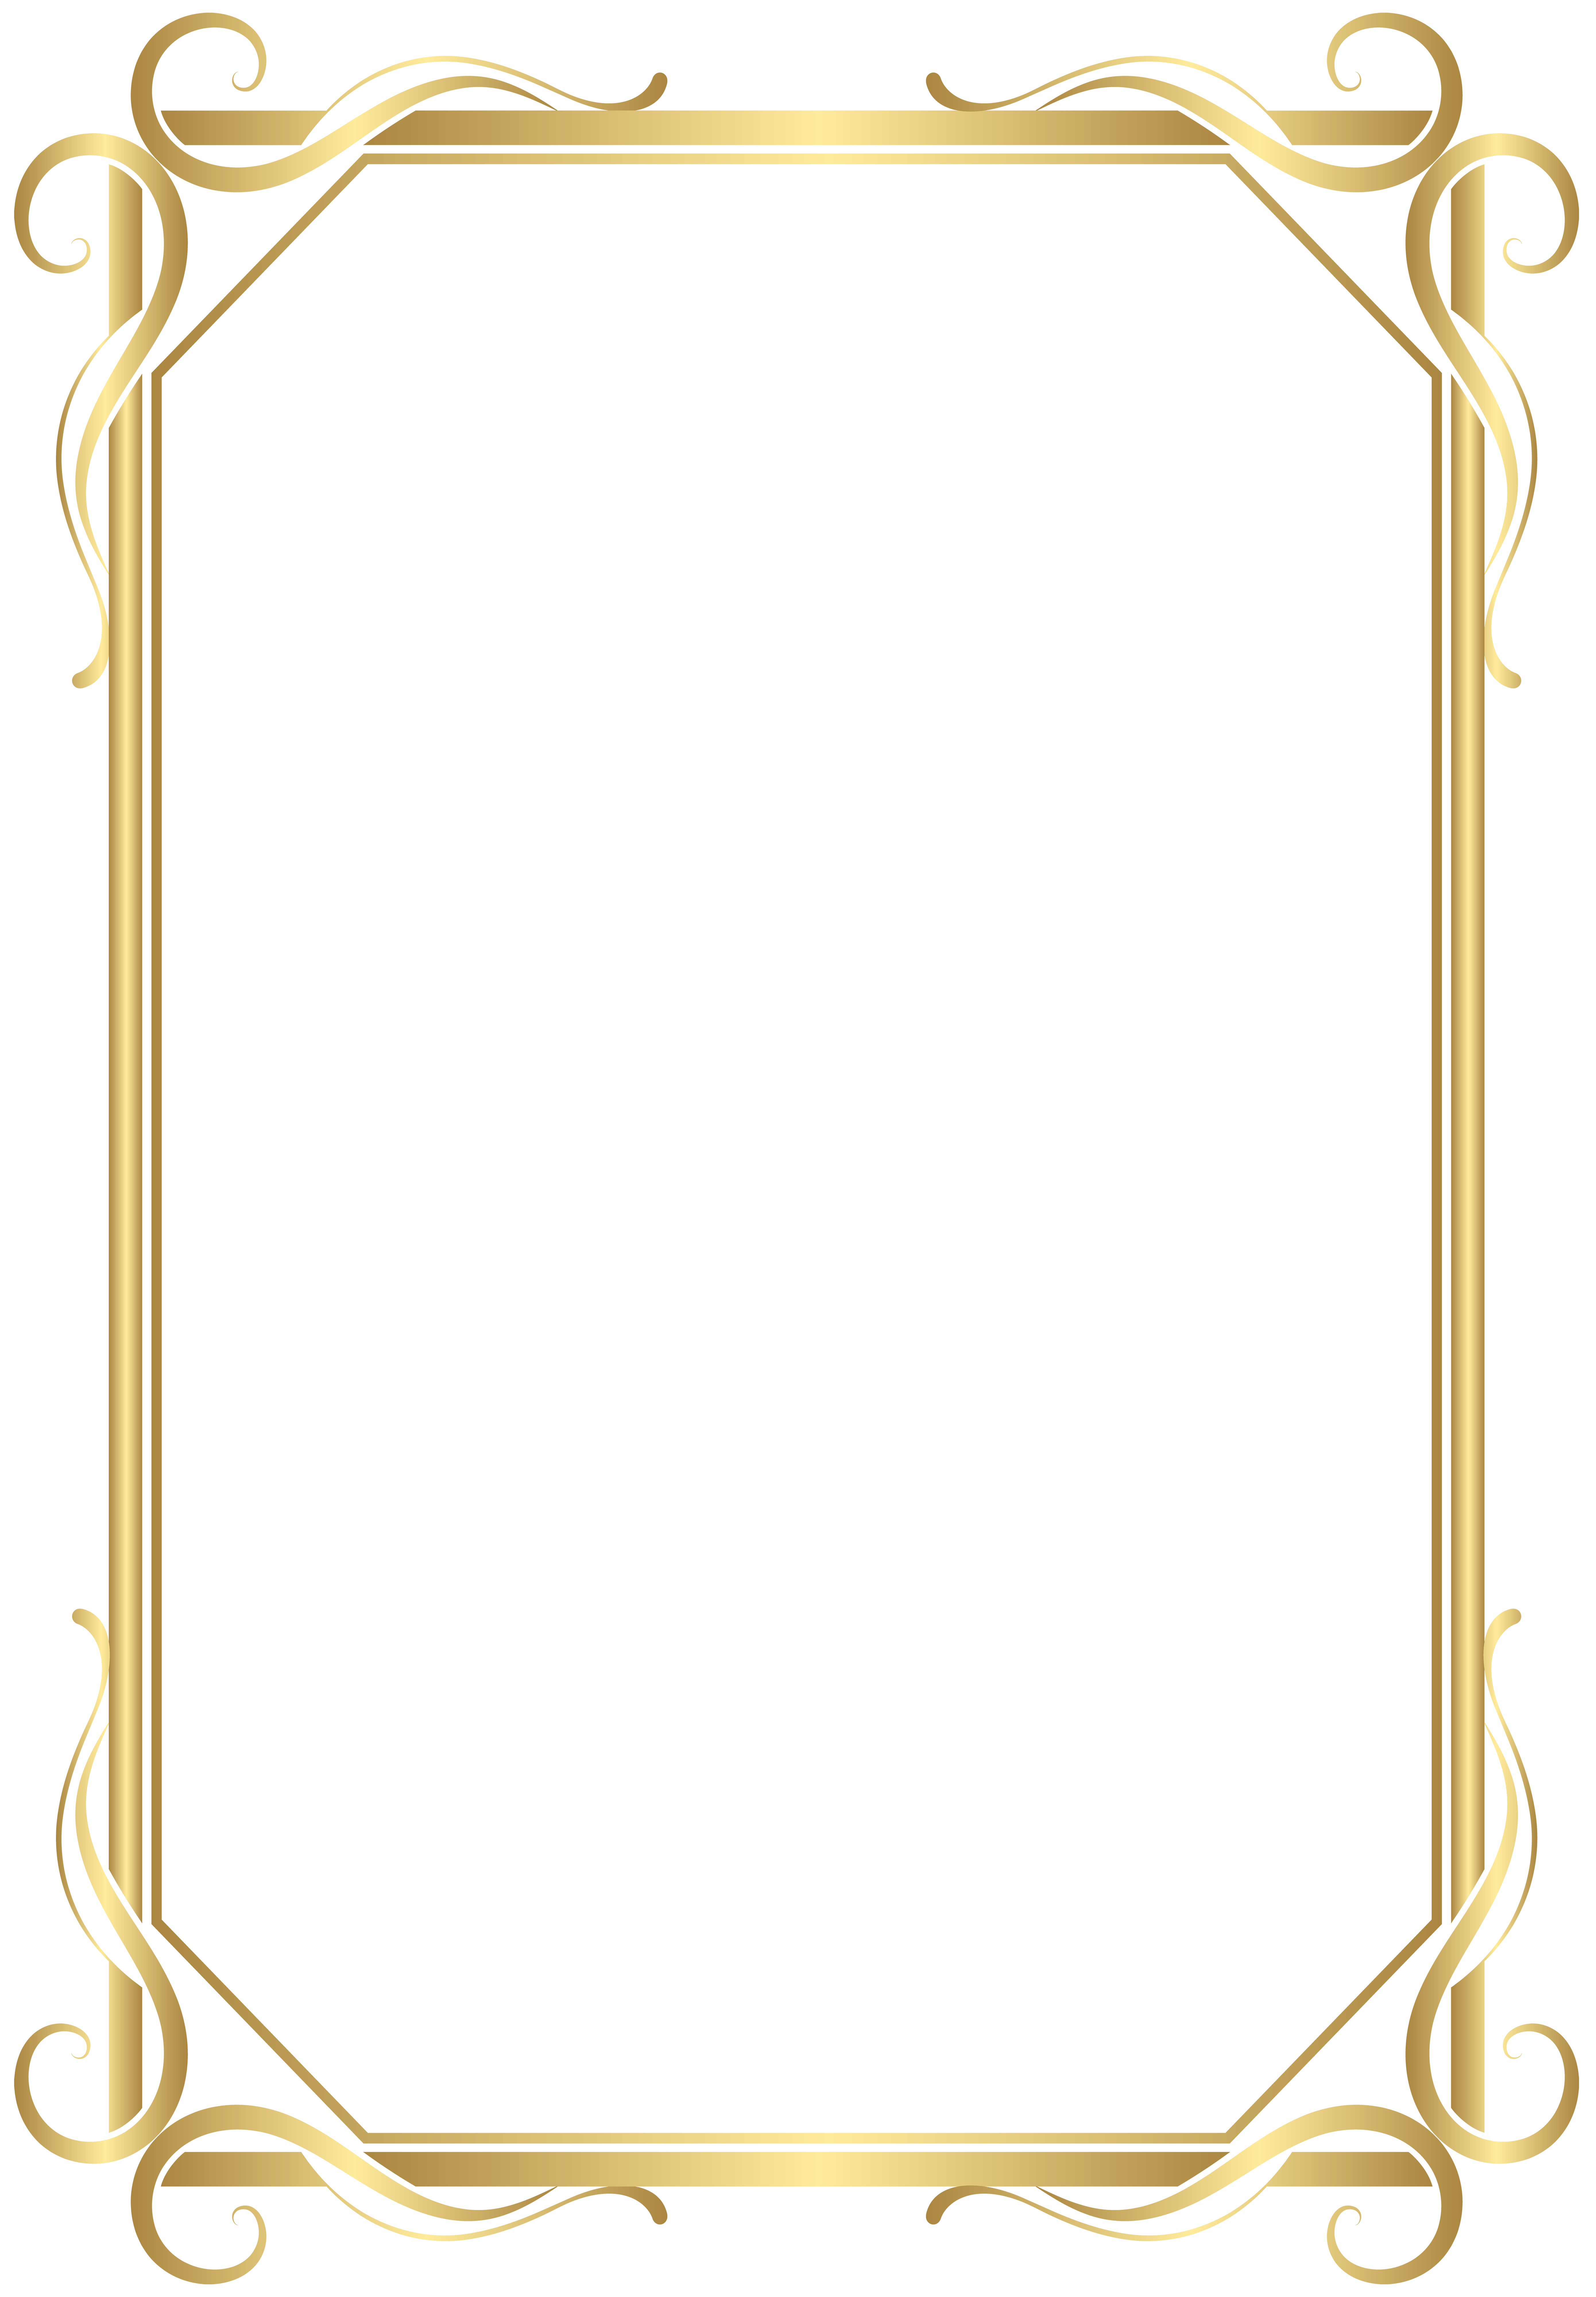 Classic vector thin gold frame. Border transparent png image